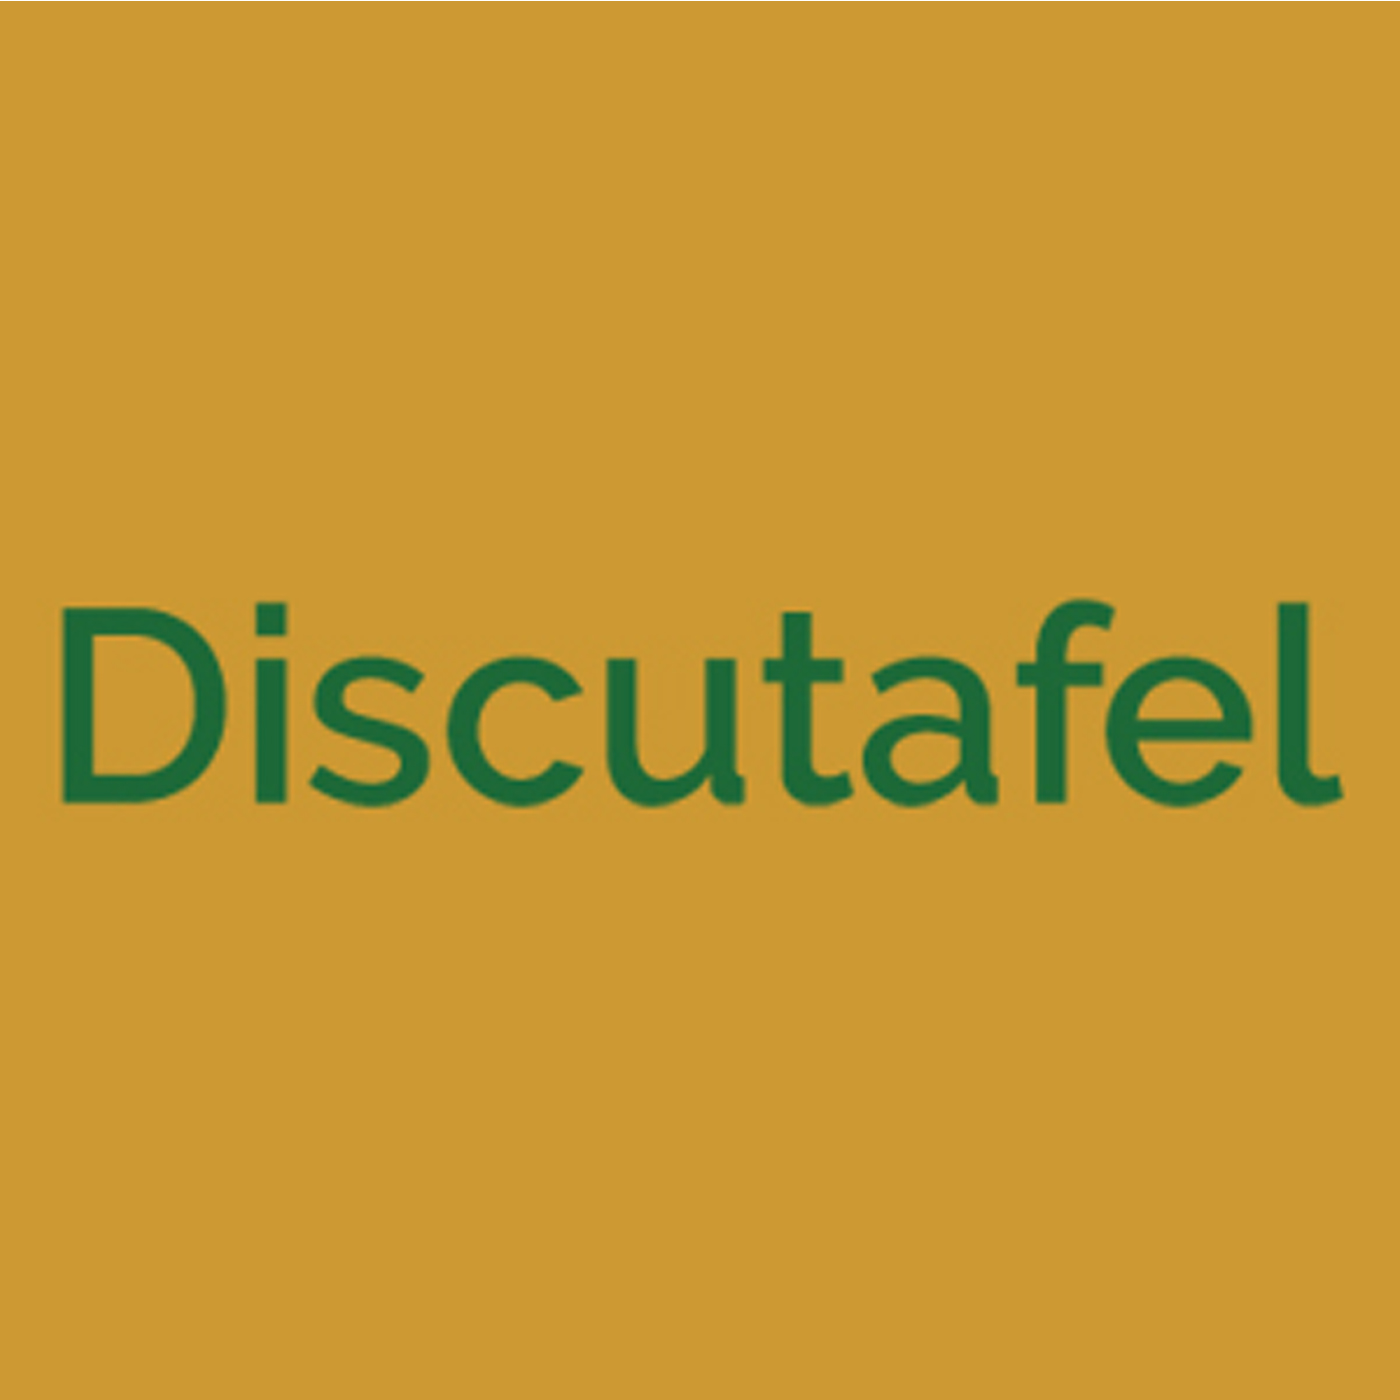 Discutafel podcast on eco-friendly gardening & permaculture